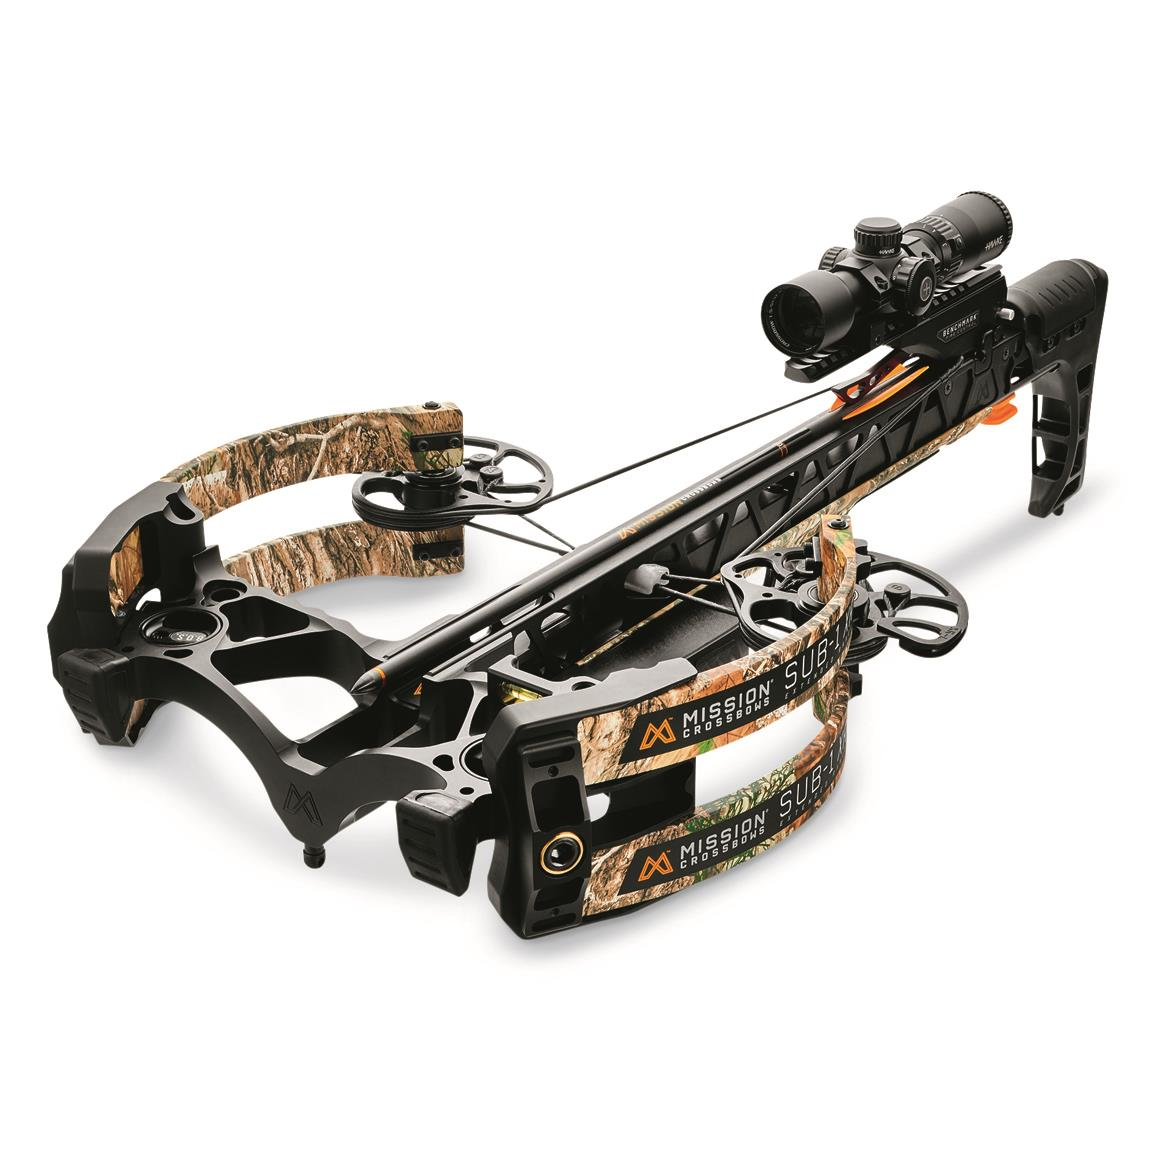 Mission Sub-1 XR Crossbow with Pro Accessory Kit, Realtree EDGE